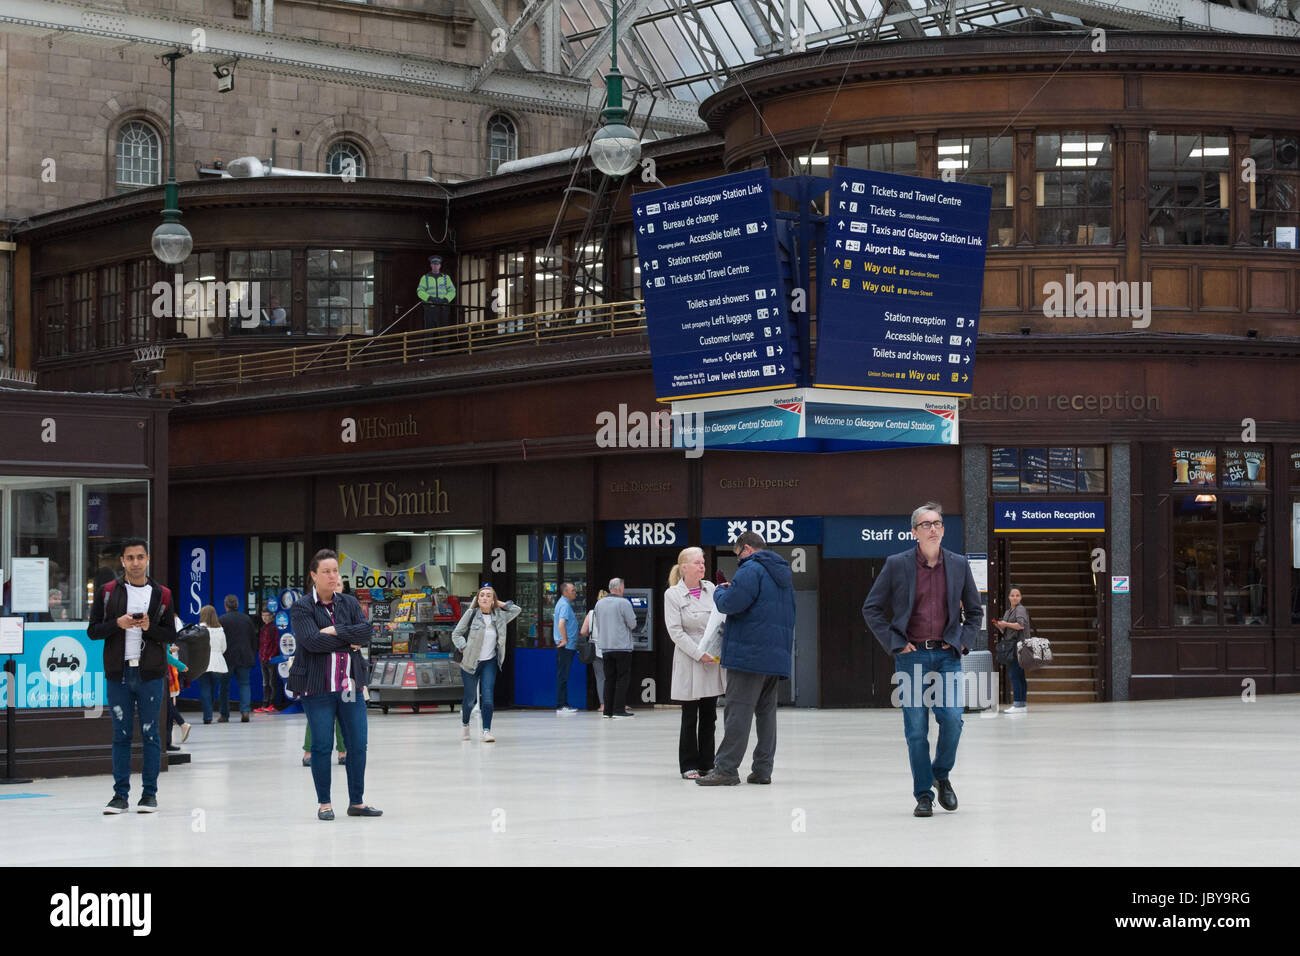 Glasgow Central Station with a cardboard cutout police officer top left - Stock Image